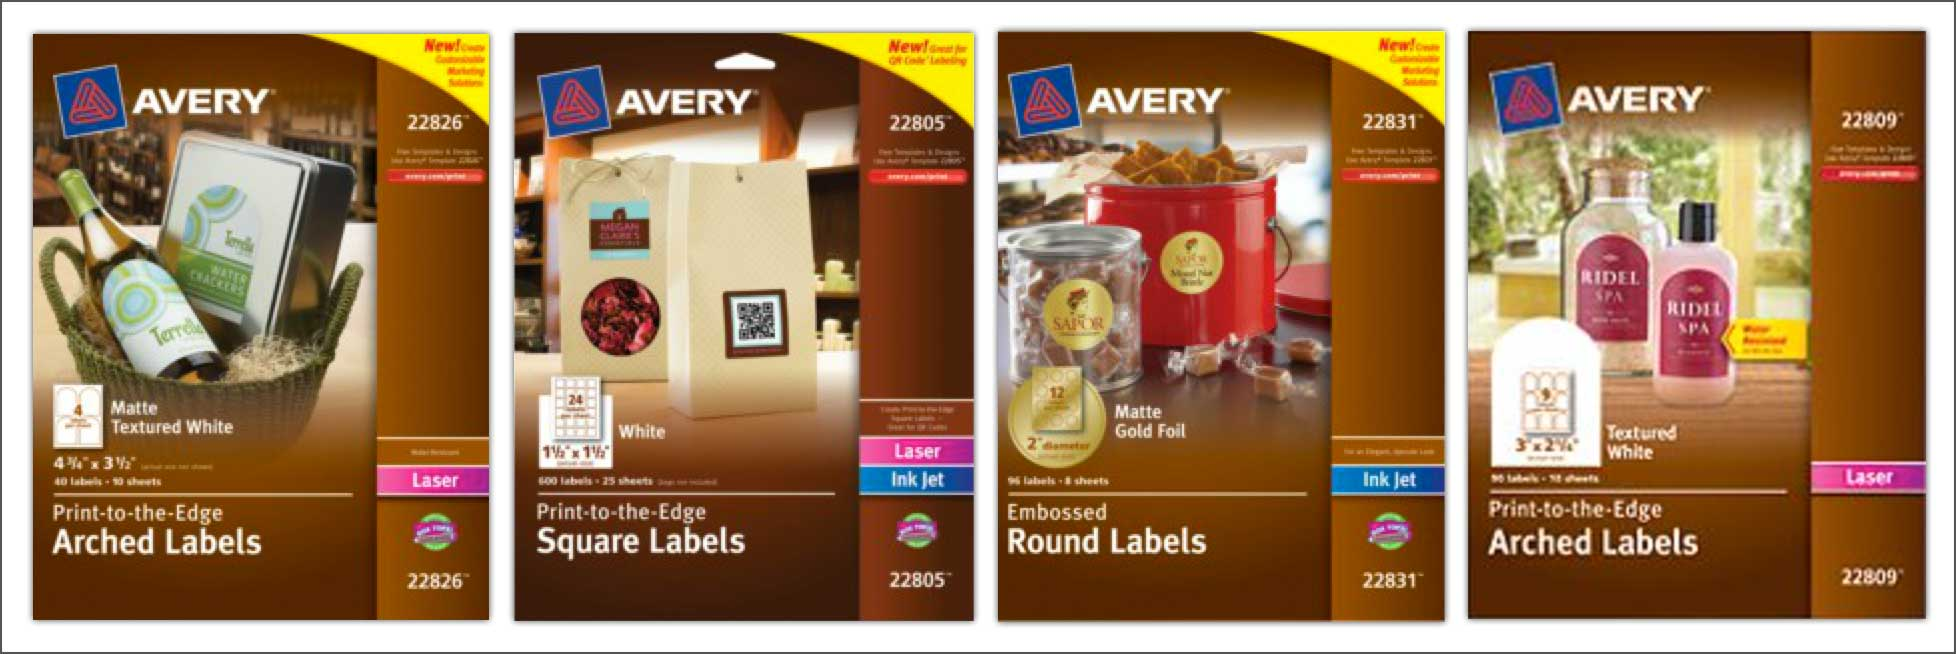 Avery marketing labels box shots.